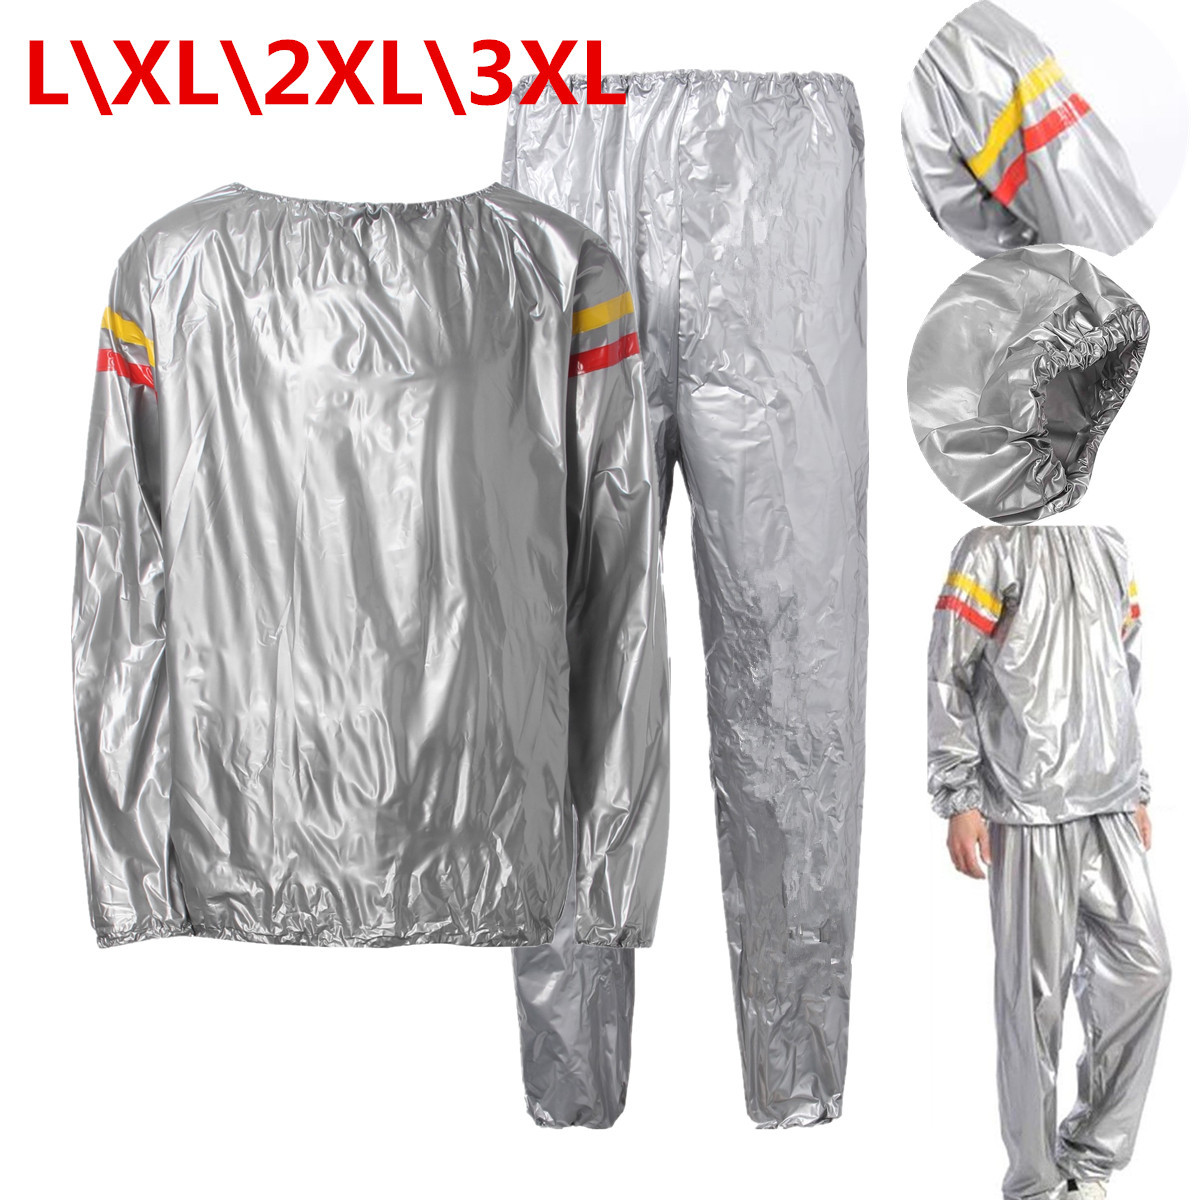 Men Women Black L-3XL PVC Fitness Slimming Loss Weight Sweat Suit Sauna Workout Suit Exercise Gym Calories Burner